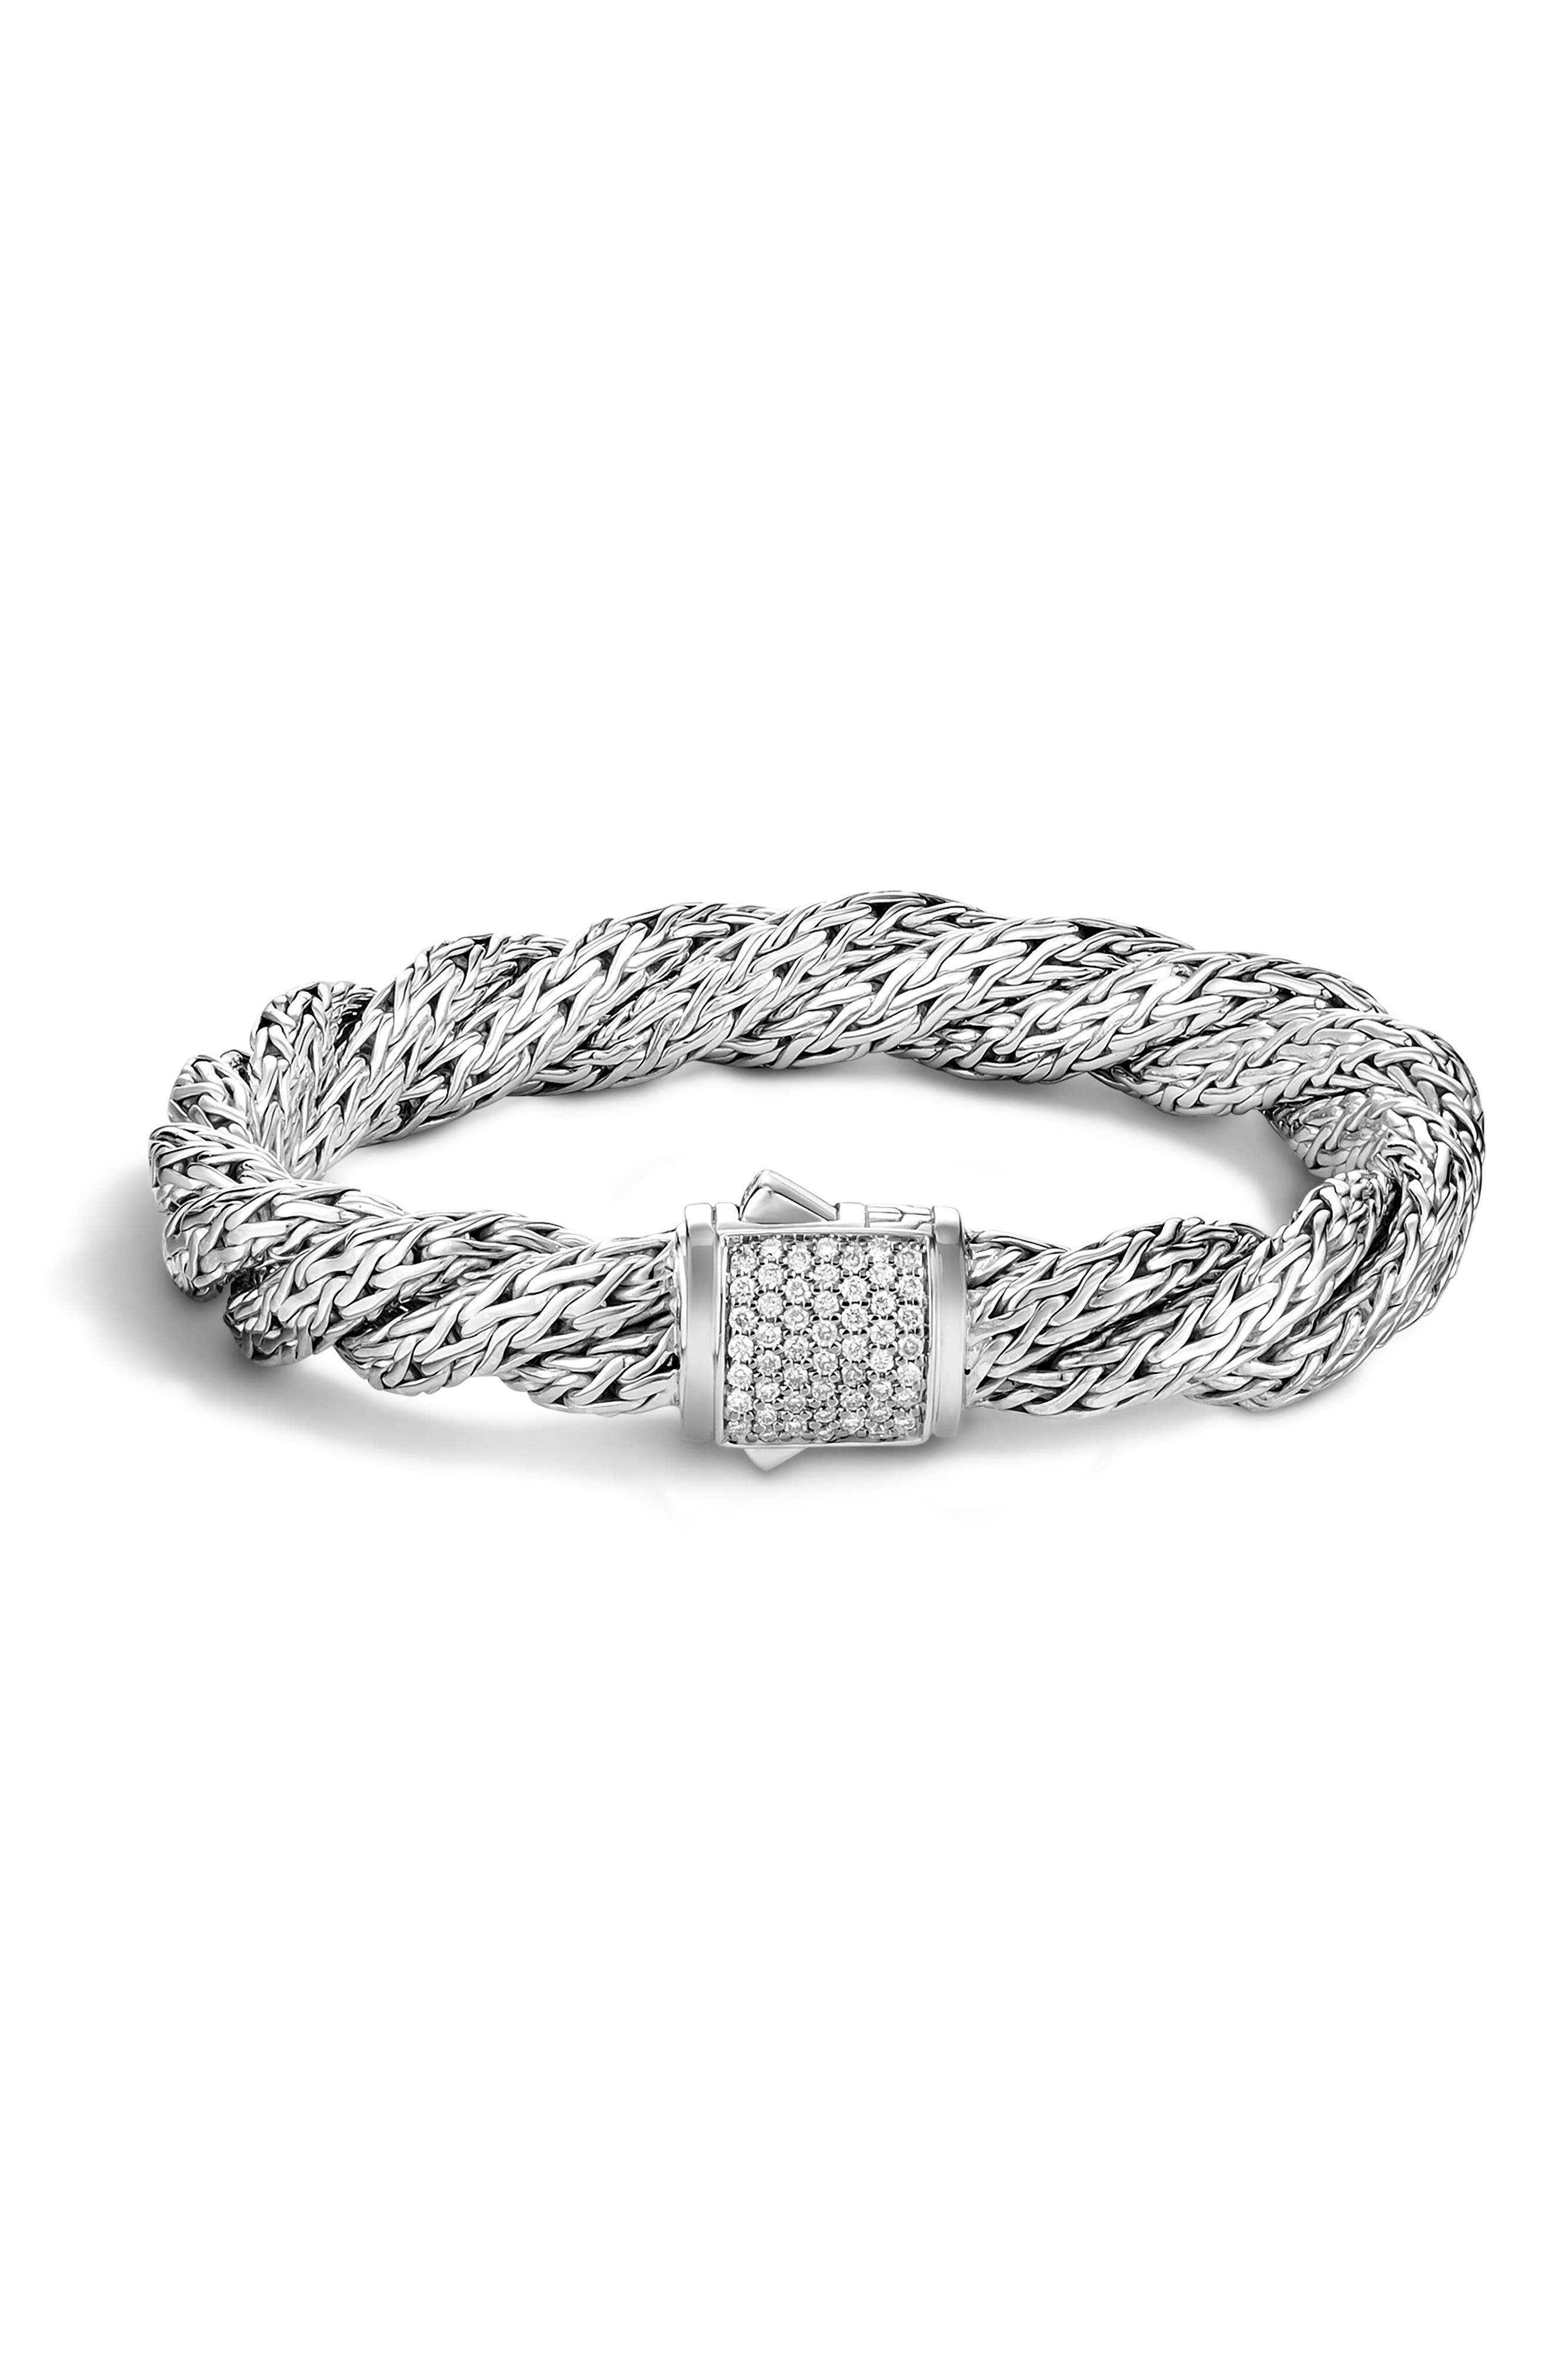 Twist Chain Pavé Diamond Bracelet,                         Main,                         color, Silver/ Diamond